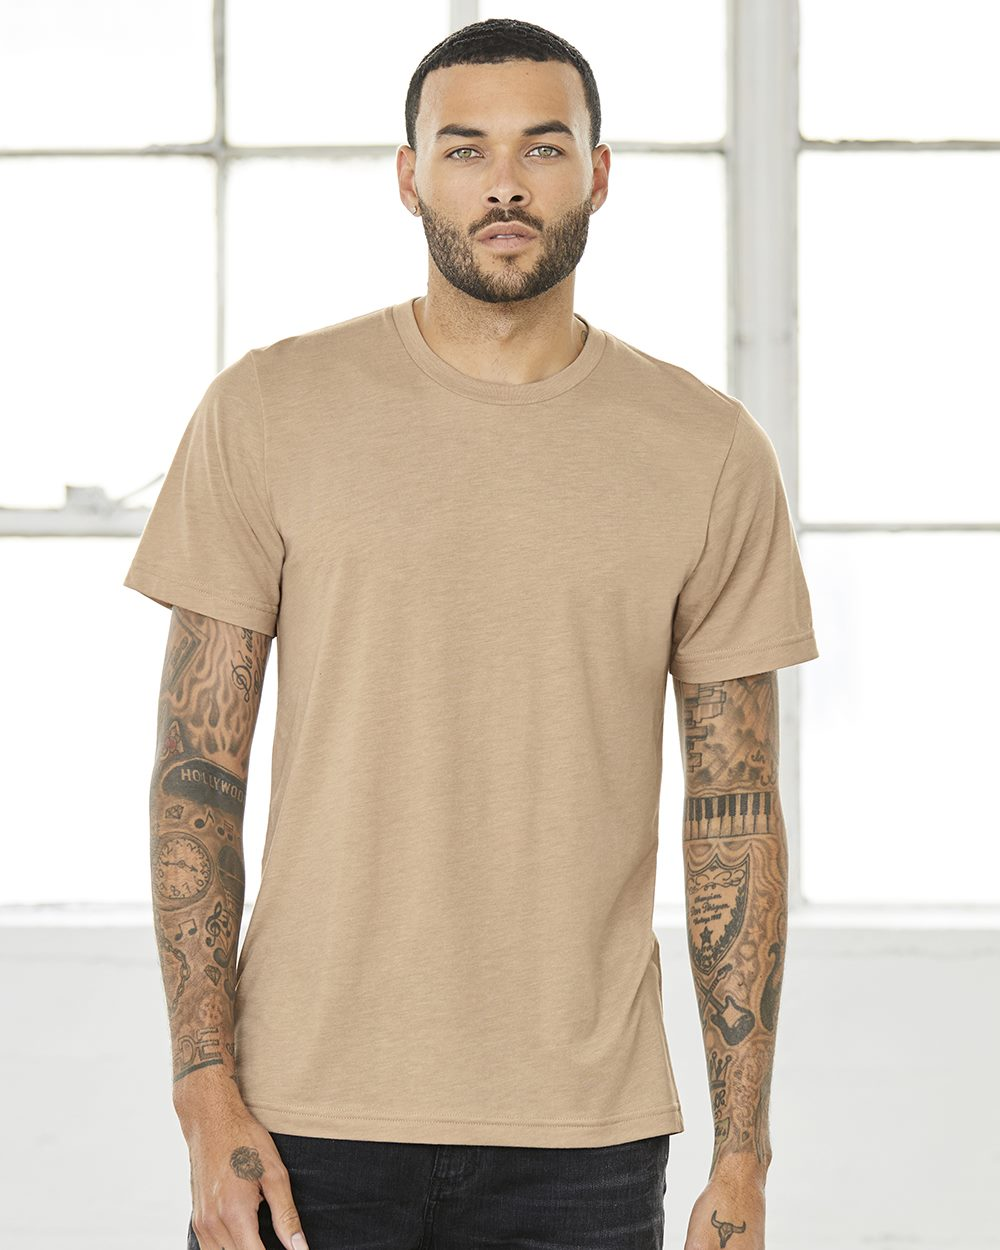 Bella + Canvas 3413 - Unisex Triblend Short Sleeve Tee